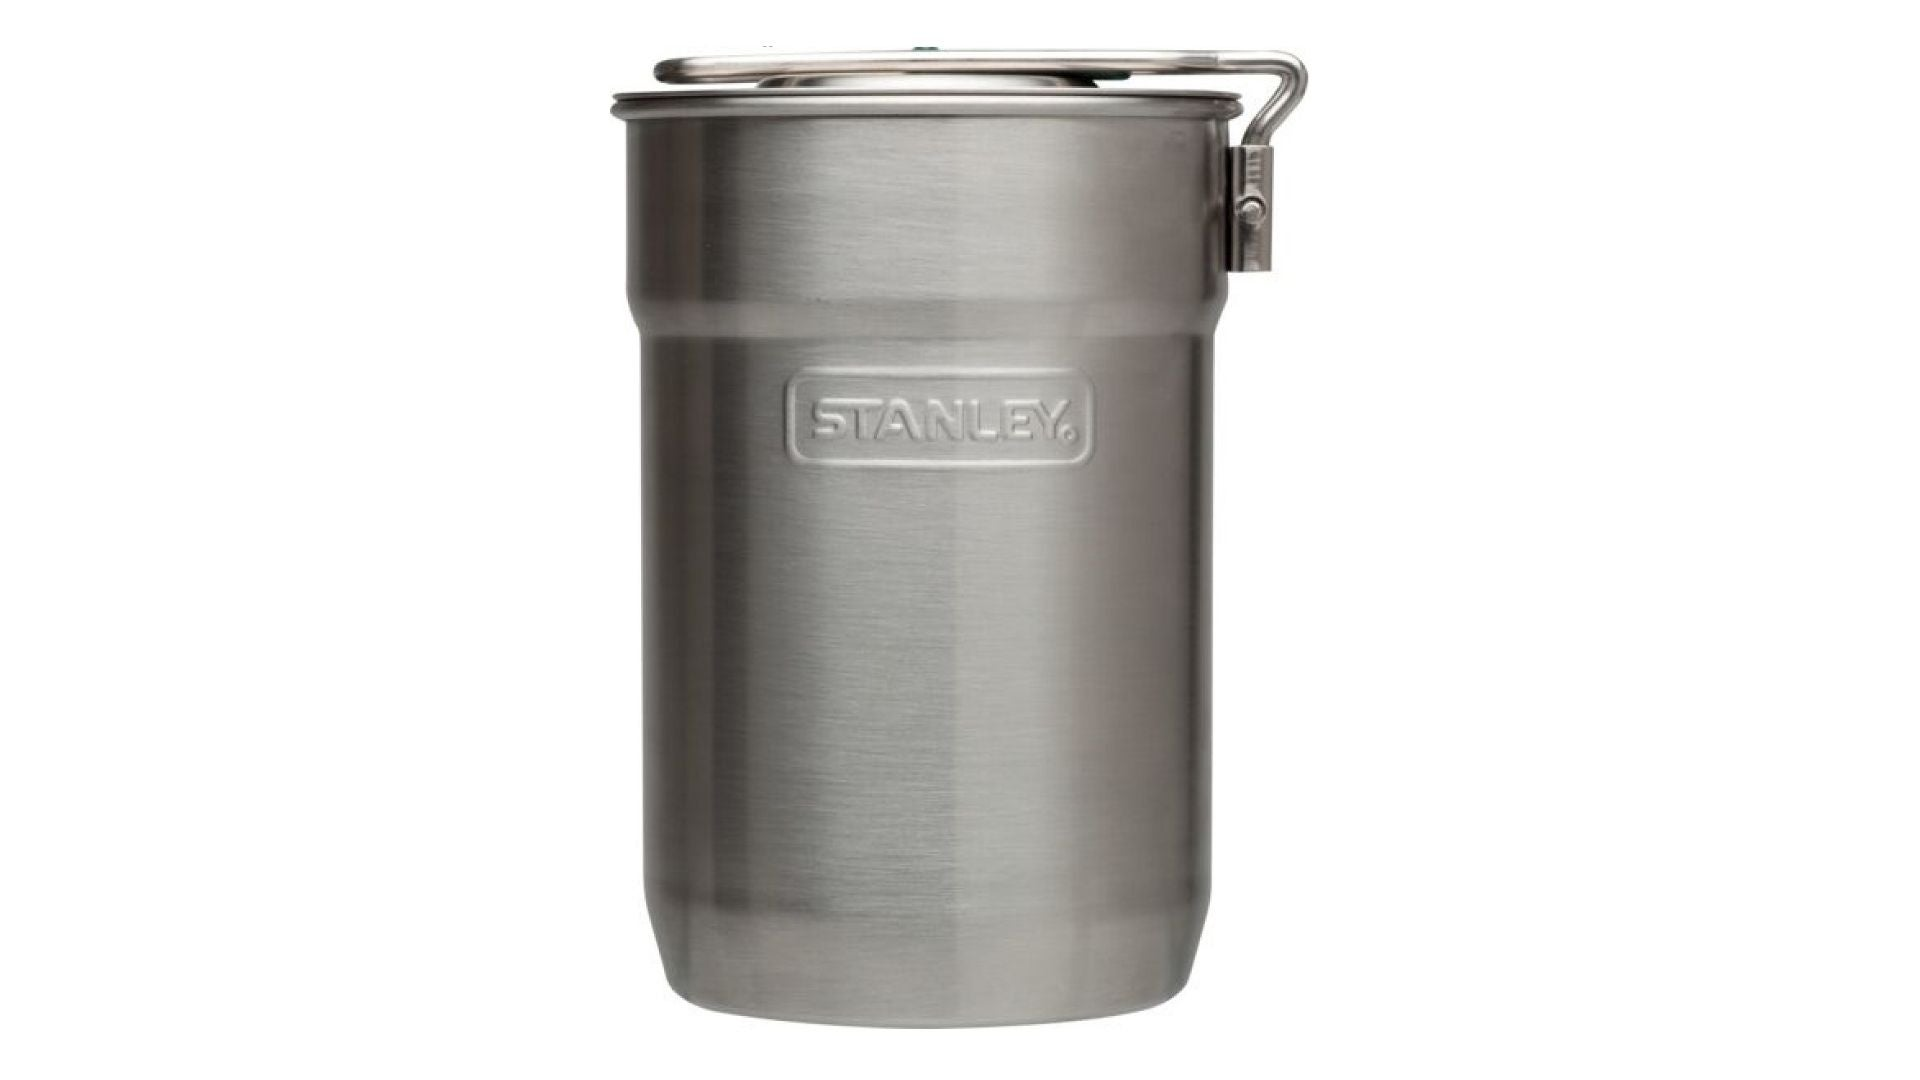 Stanley Adventure Nesting Two Cup Camp Cook Set